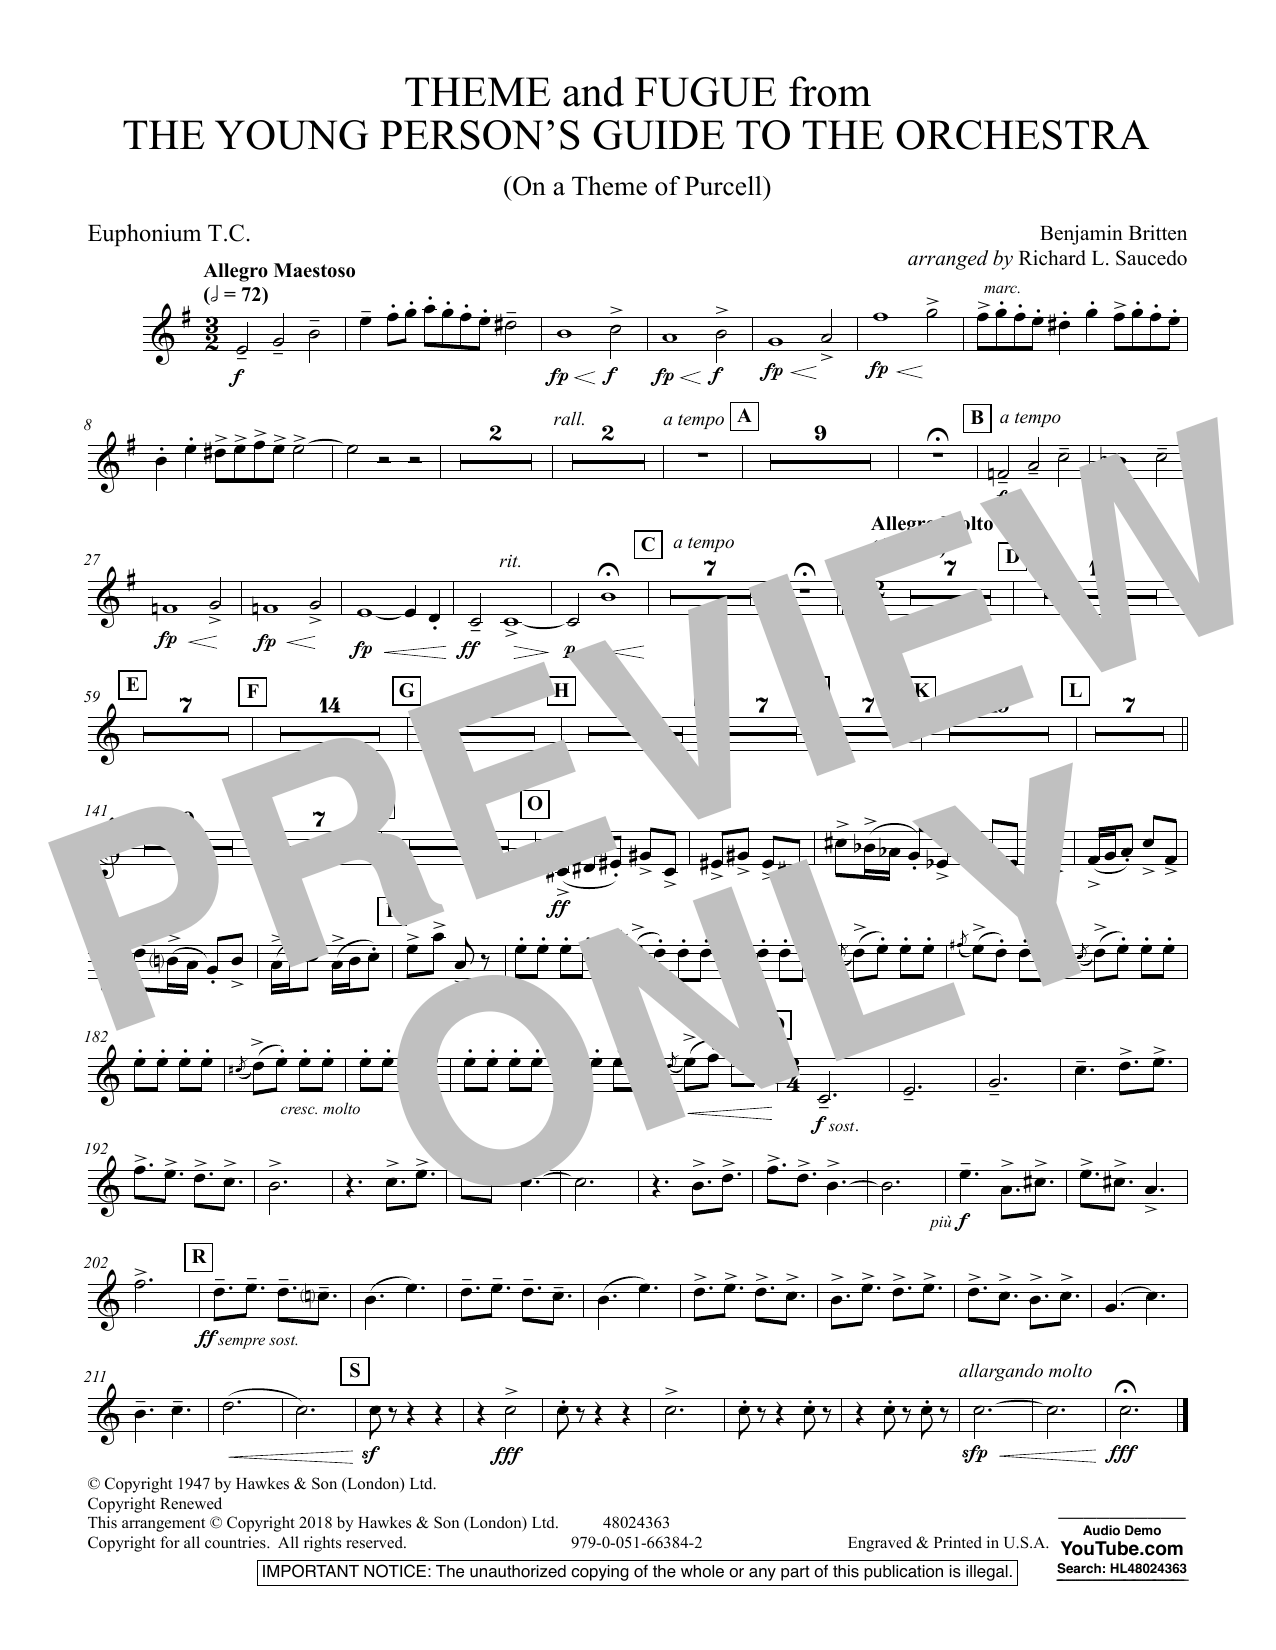 Benjamin Britten Theme and Fugue from The Young Person's Guide to the Orchestra - Euphonium in Treble Clef sheet music preview music notes and score for Concert Band including 1 page(s)